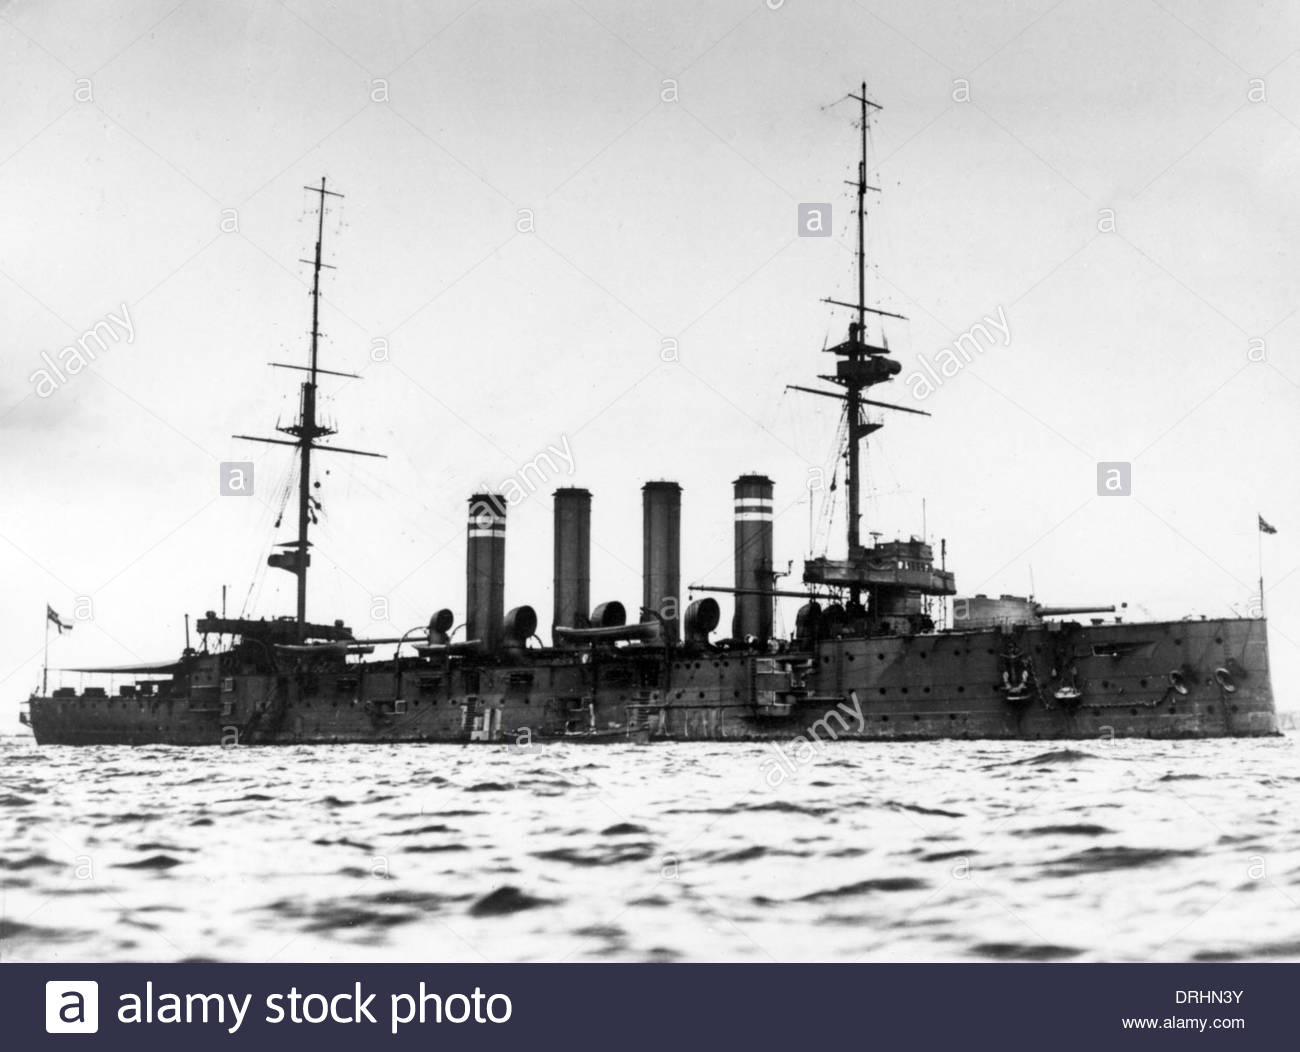 HMS Hogue was torpedo and sunk by U9 on 22-09-1914, with the loss of 375 lives.  X.png